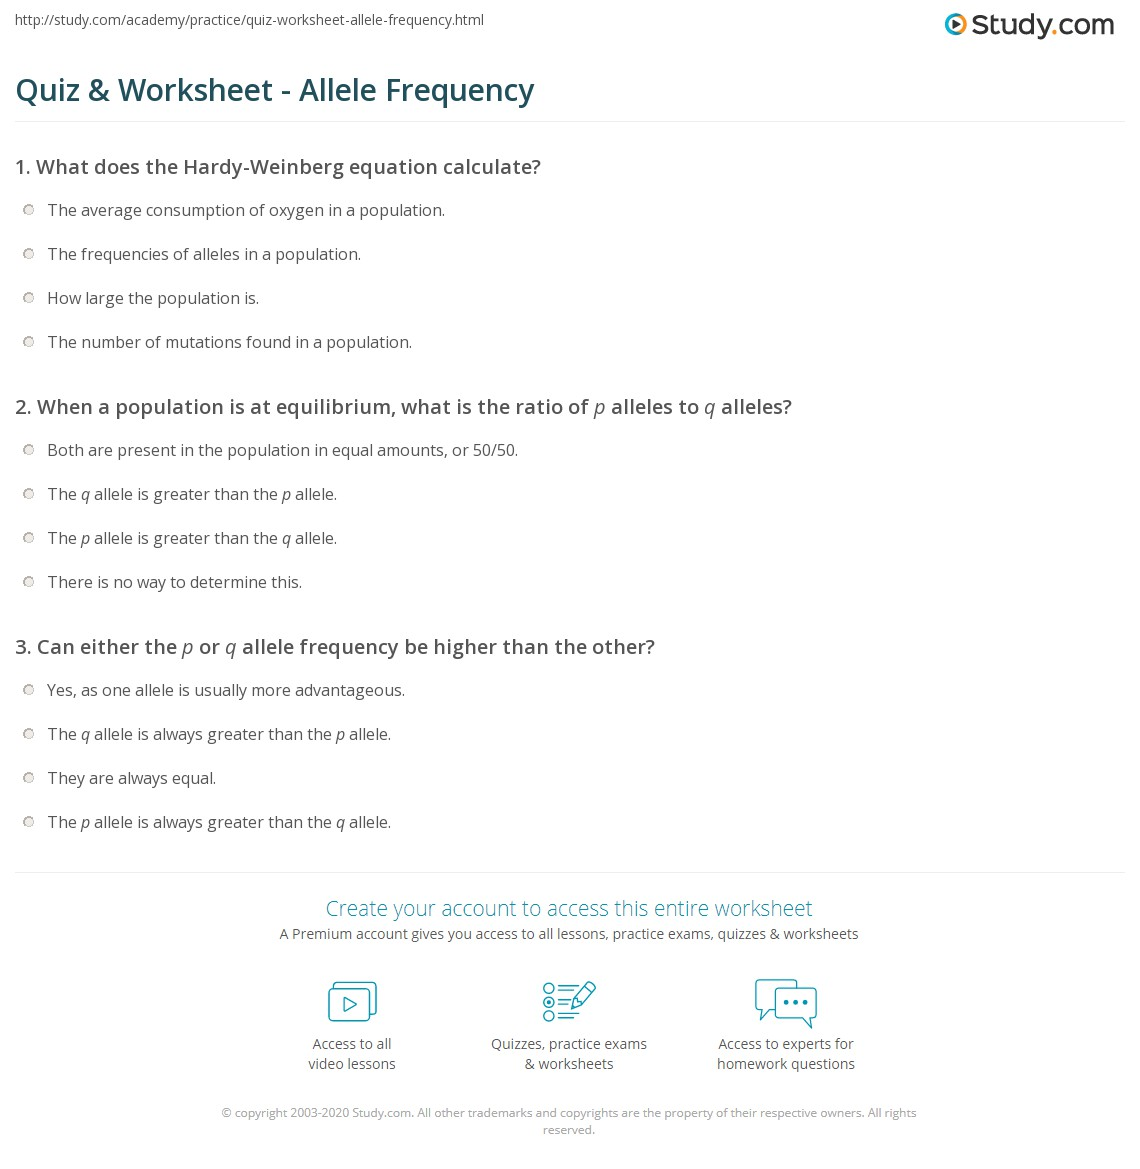 Quiz & Worksheet - Allele Frequency